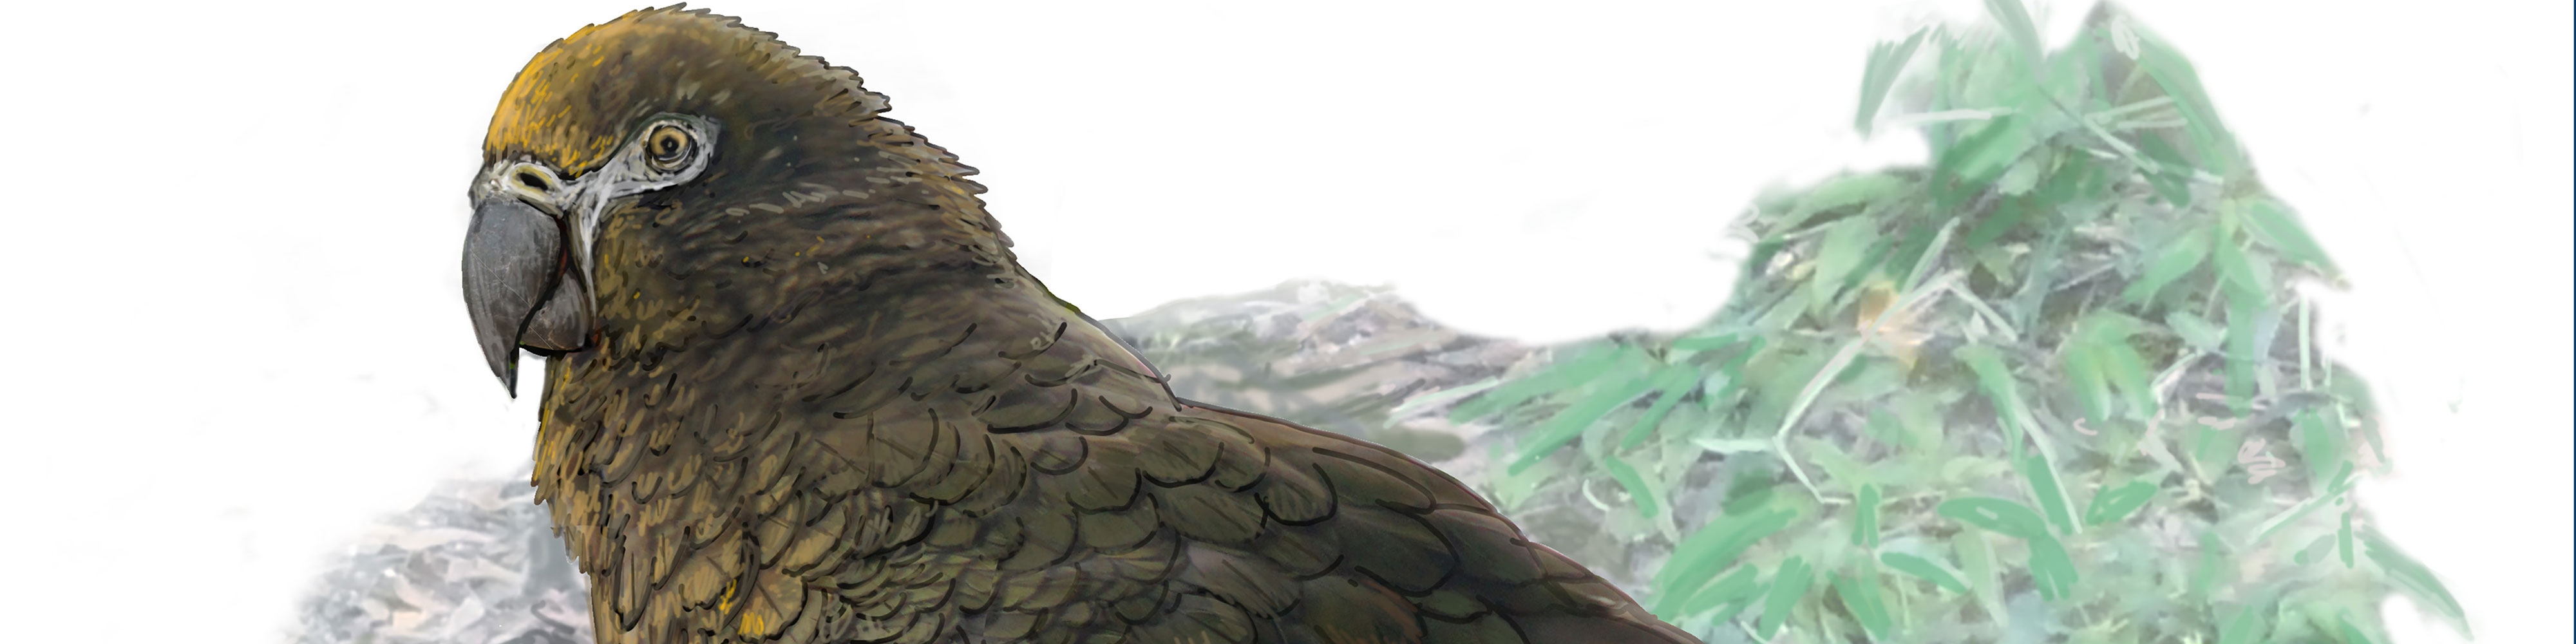 World S Largest Parrot Squawkzilla Discovered Curious